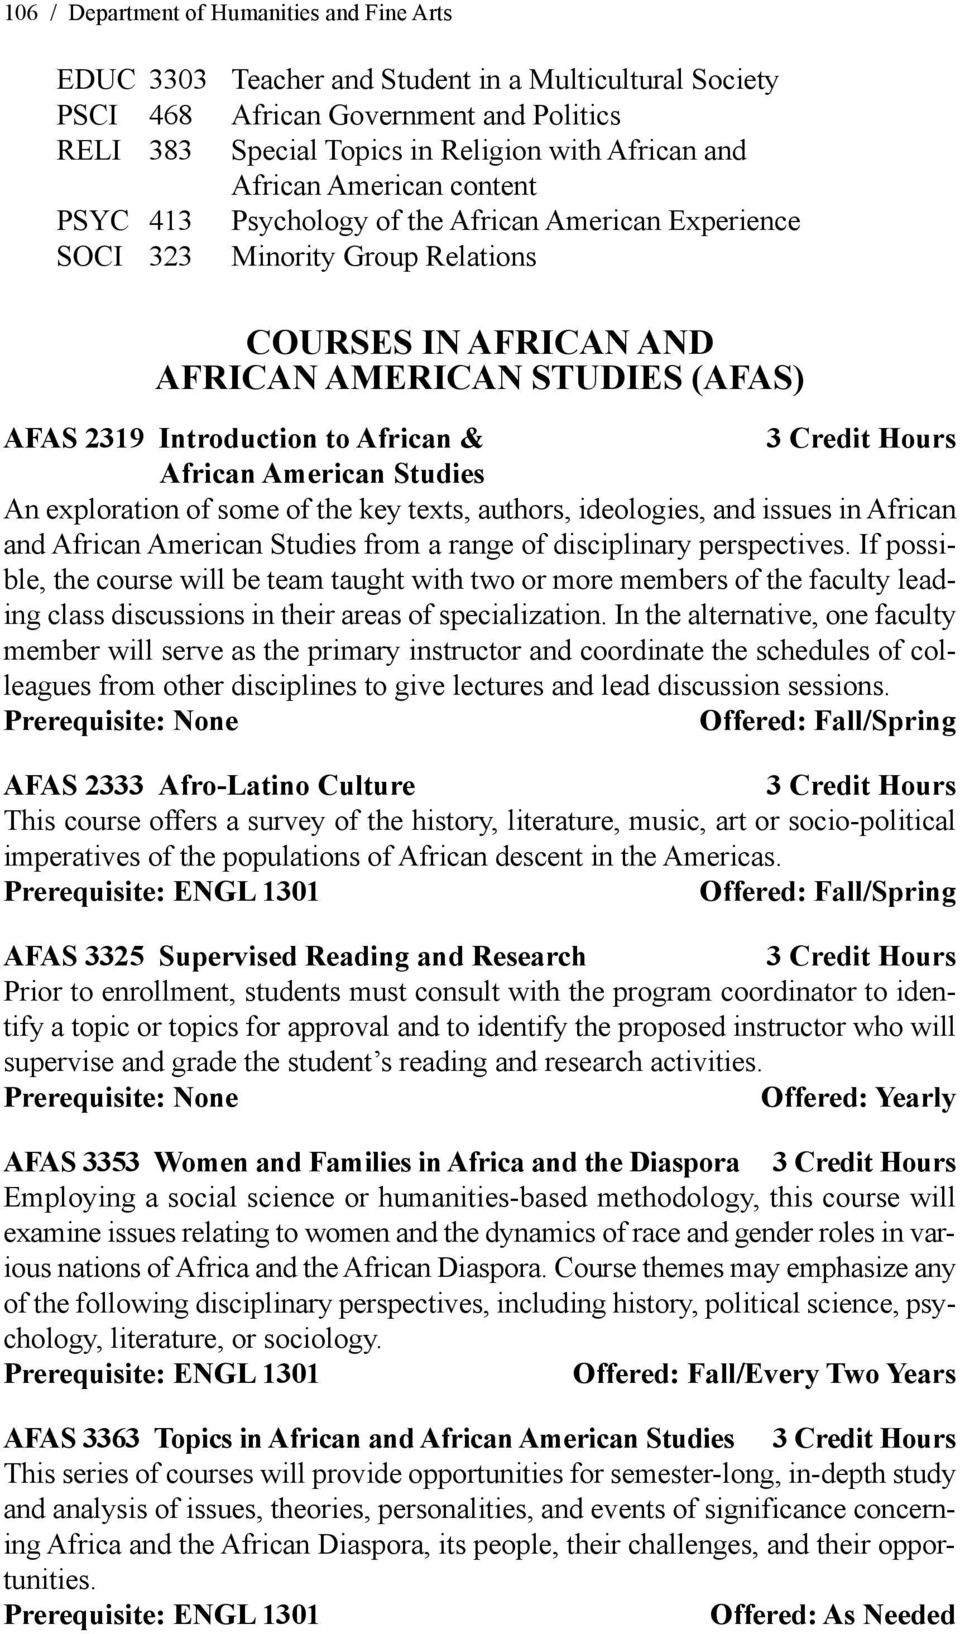 African & African American Studies An exploration of some of the key texts, authors, ideologies, and issues in African and African American Studies from a range of disciplinary perspectives.